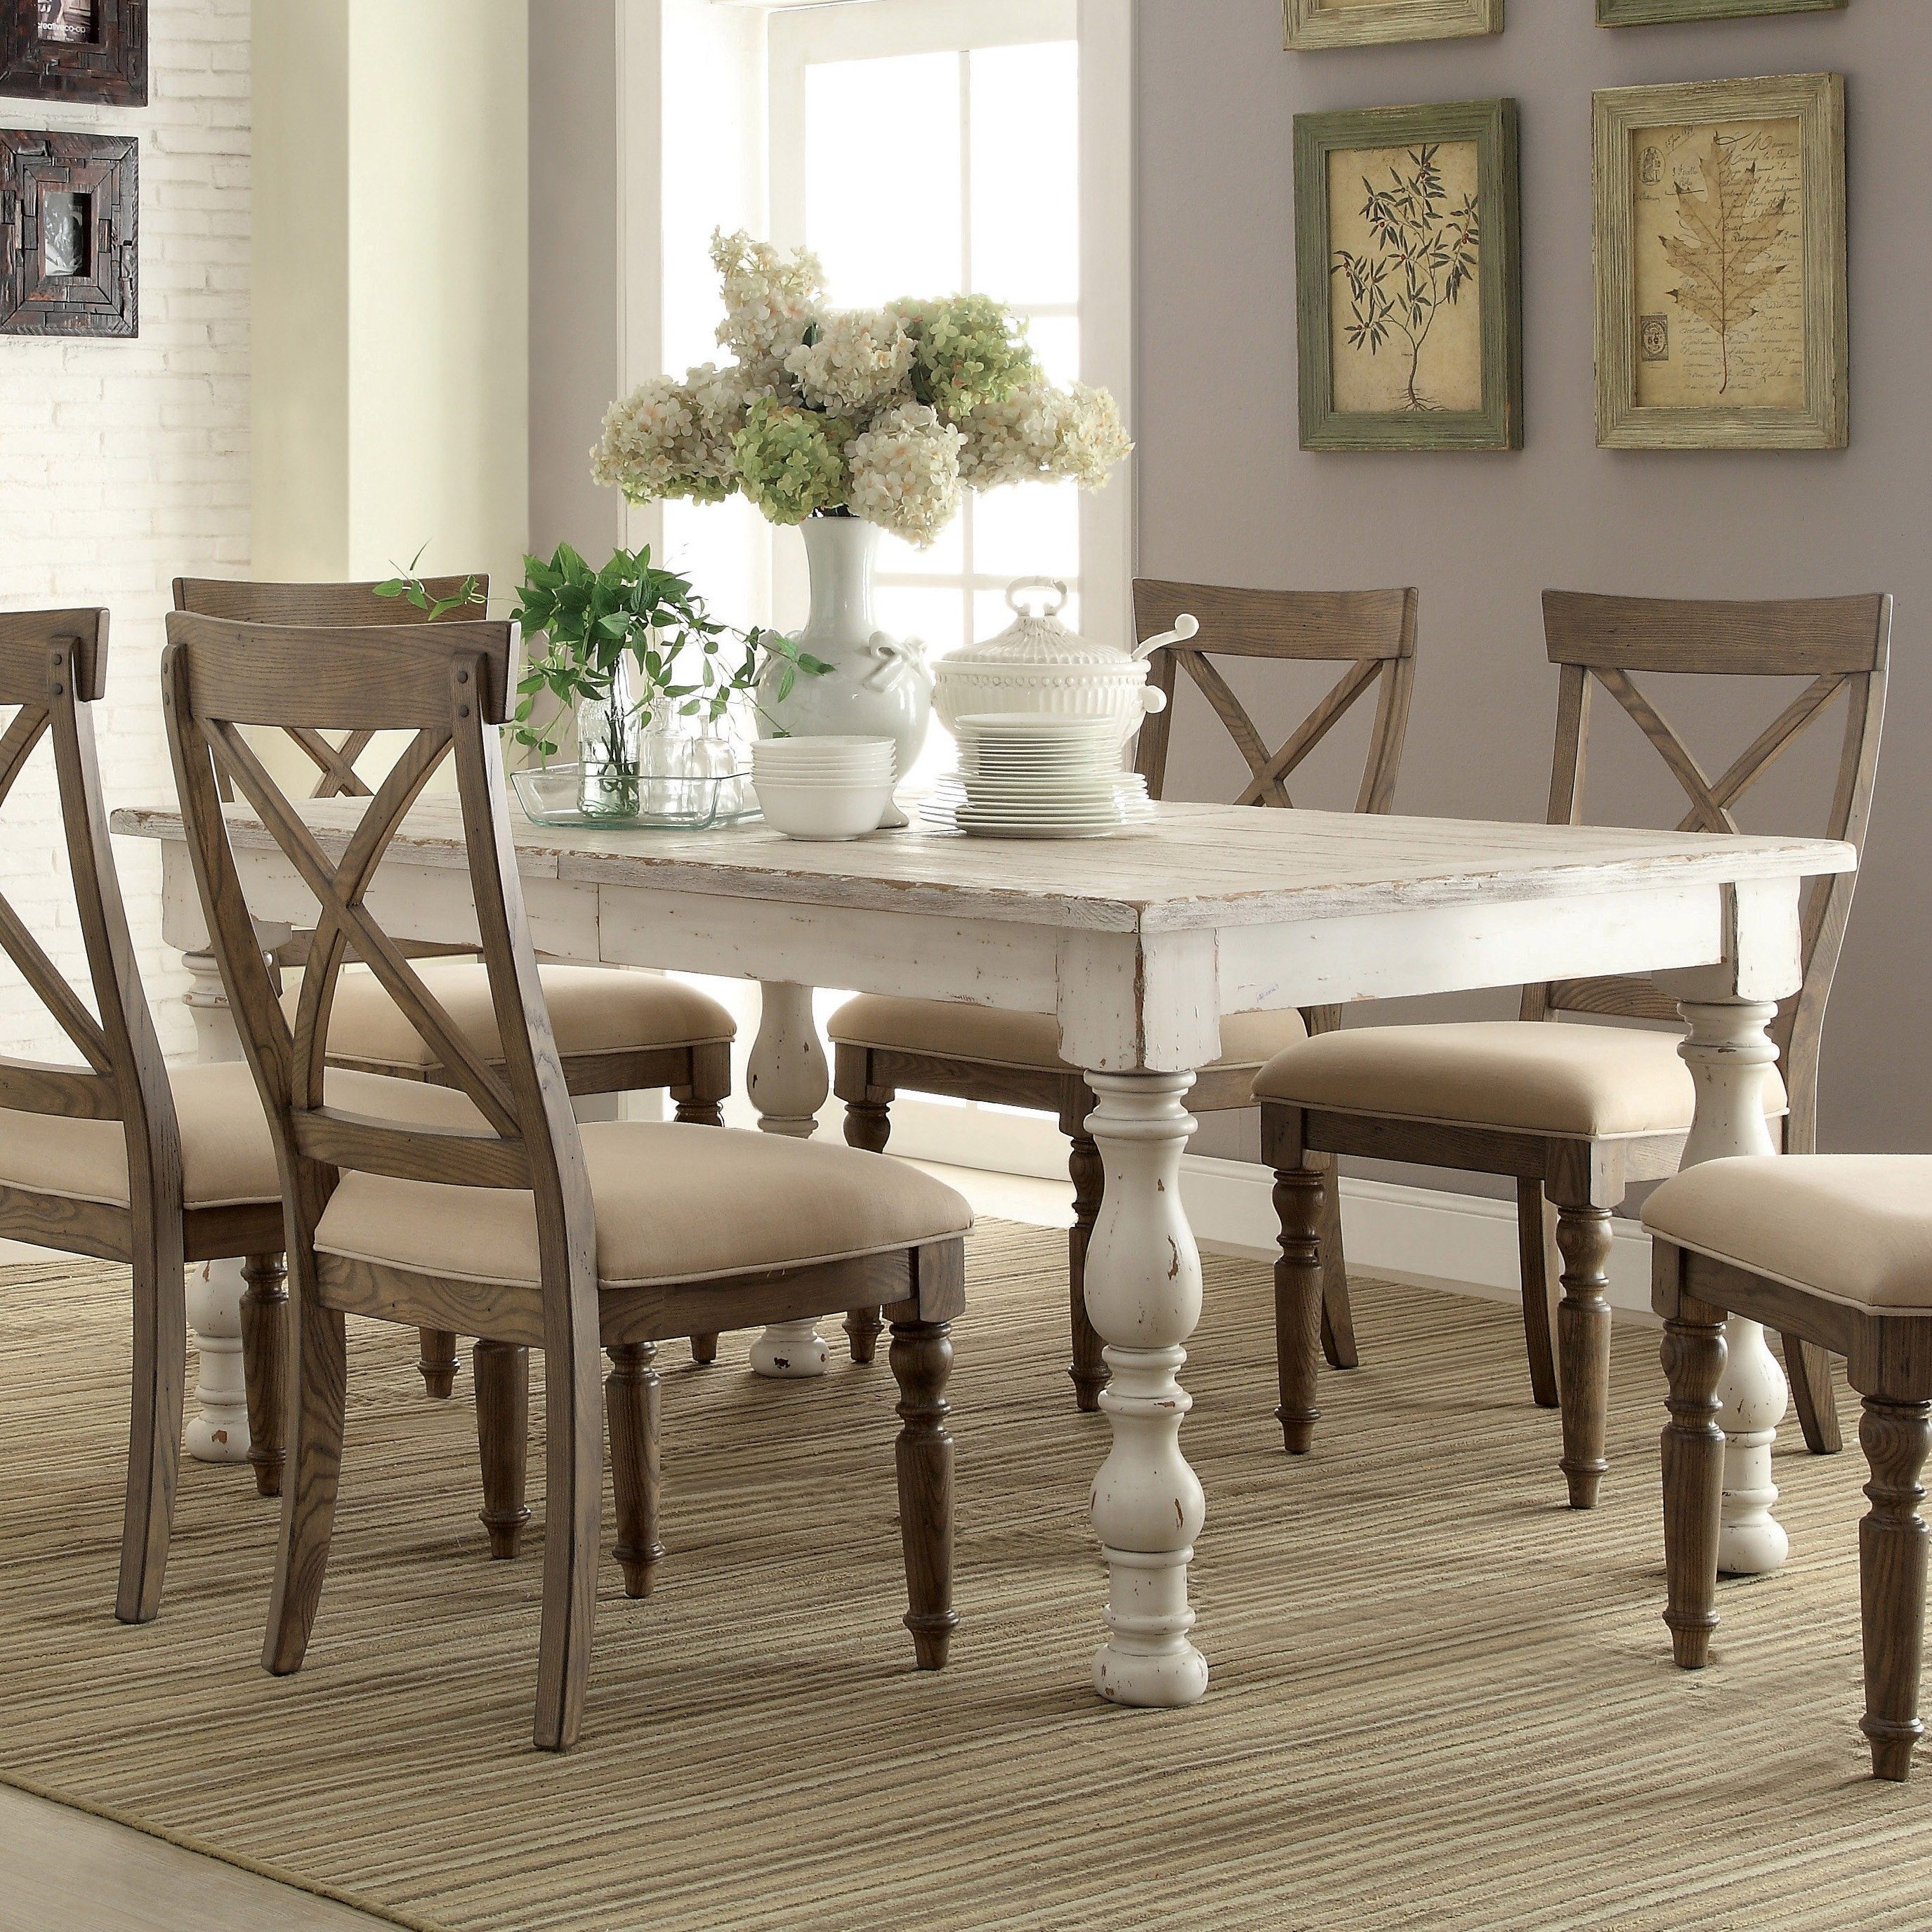 Aberdeen wood rectangular dining table and chairs in for Small wood dining table and chairs